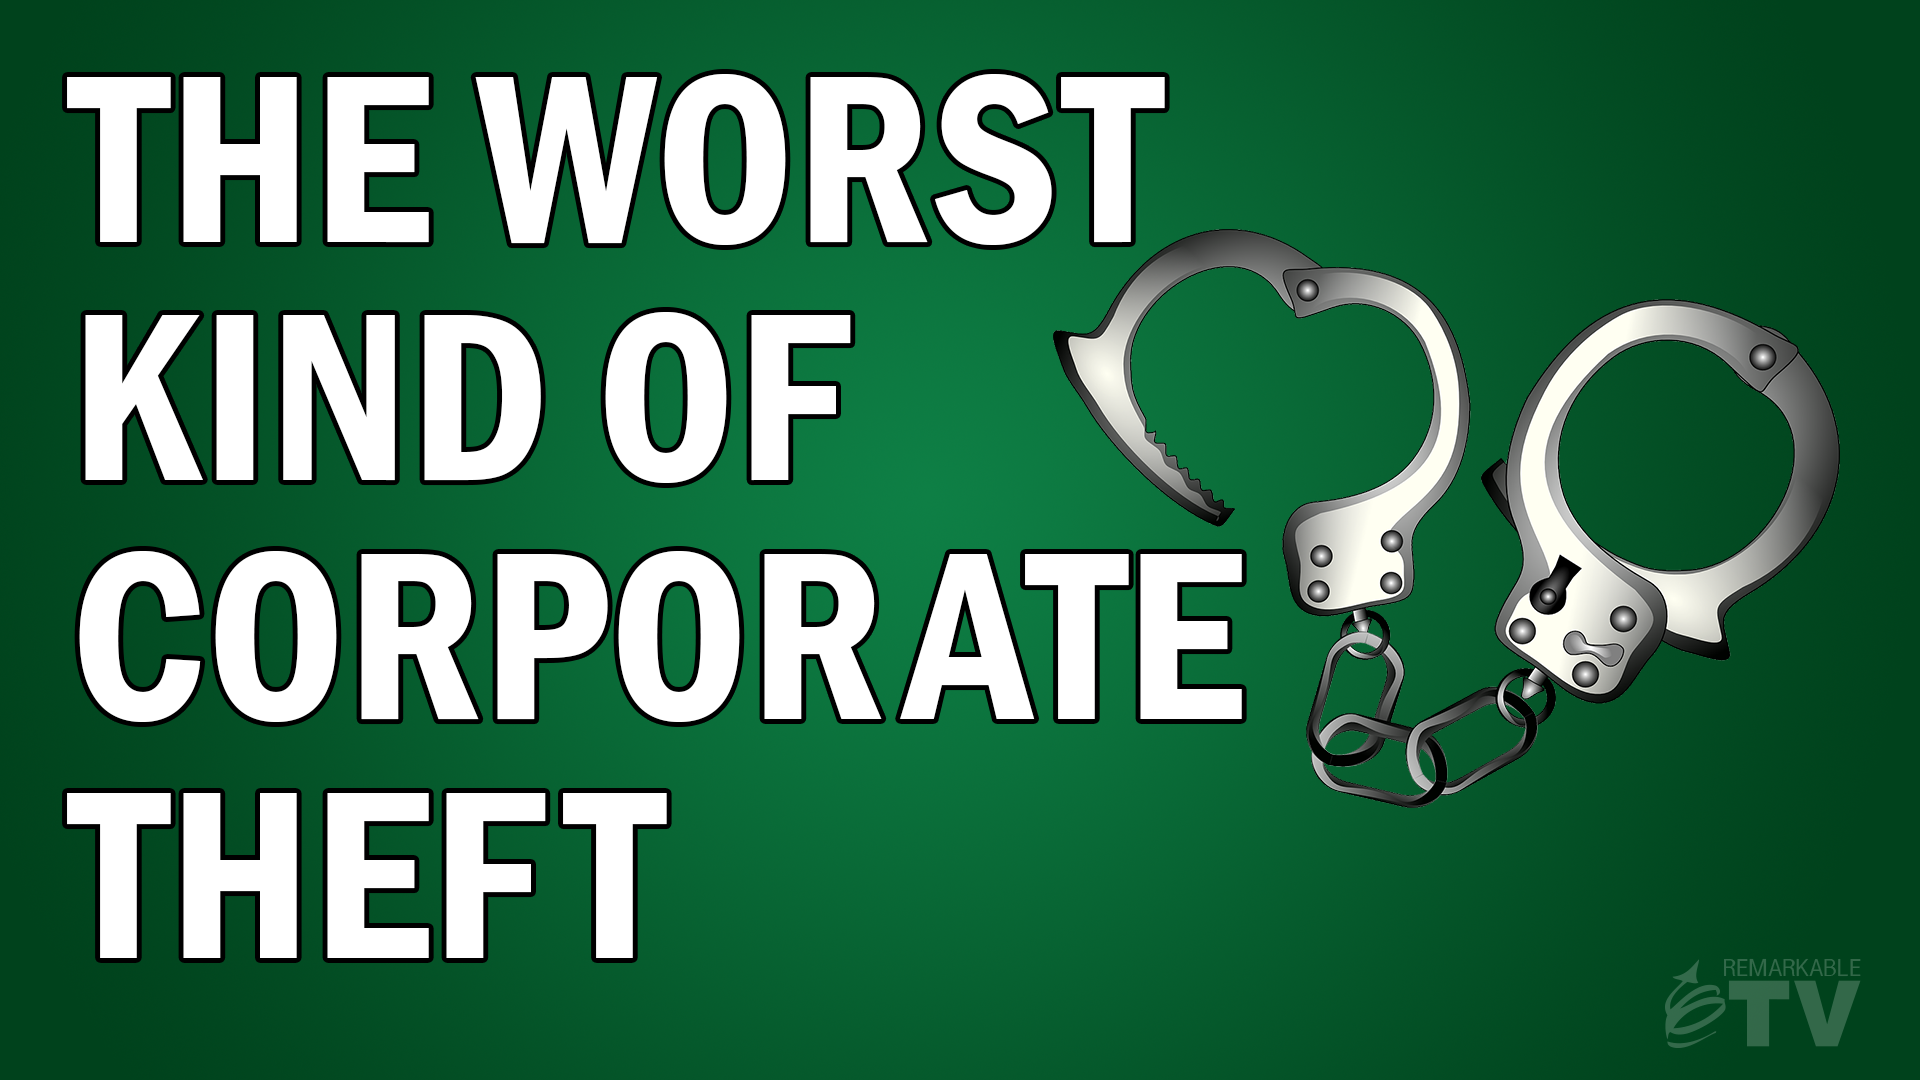 The Worst Kind of Corporate Theft - Kevin Eikenberry on Remarkable TV